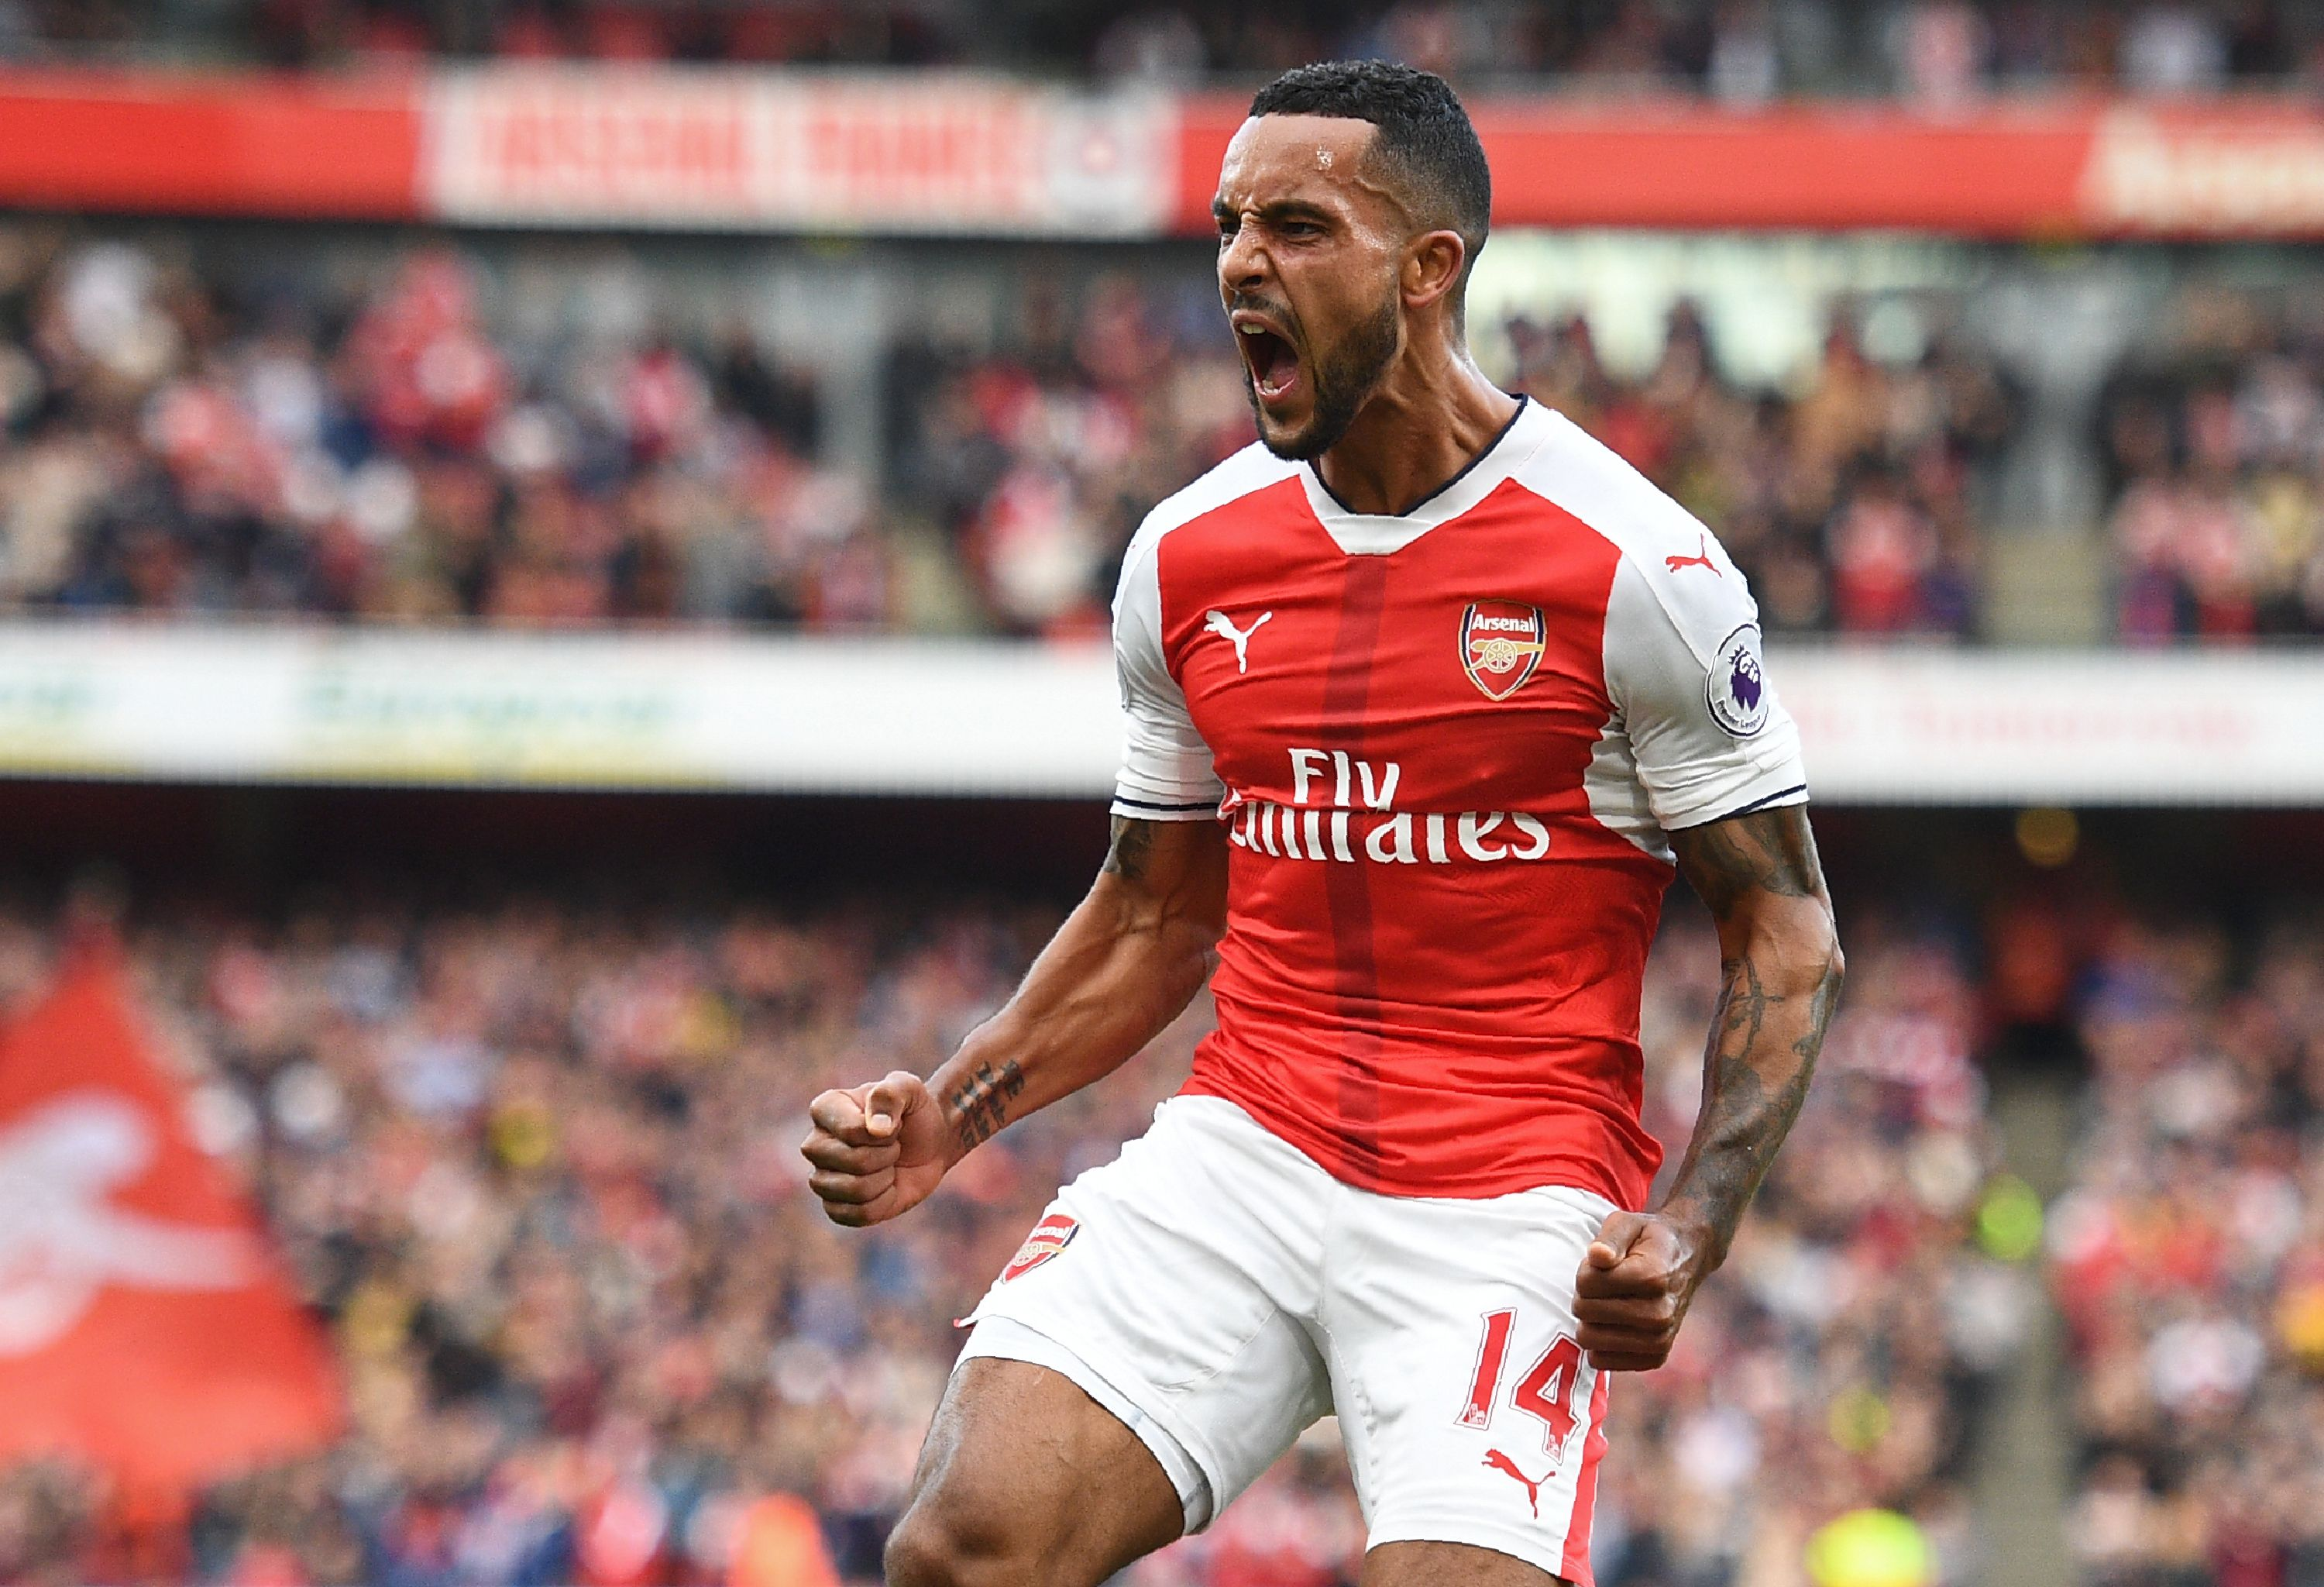 Theo Walcott and Eden Hazard nominated for October PFA Player of the Month award